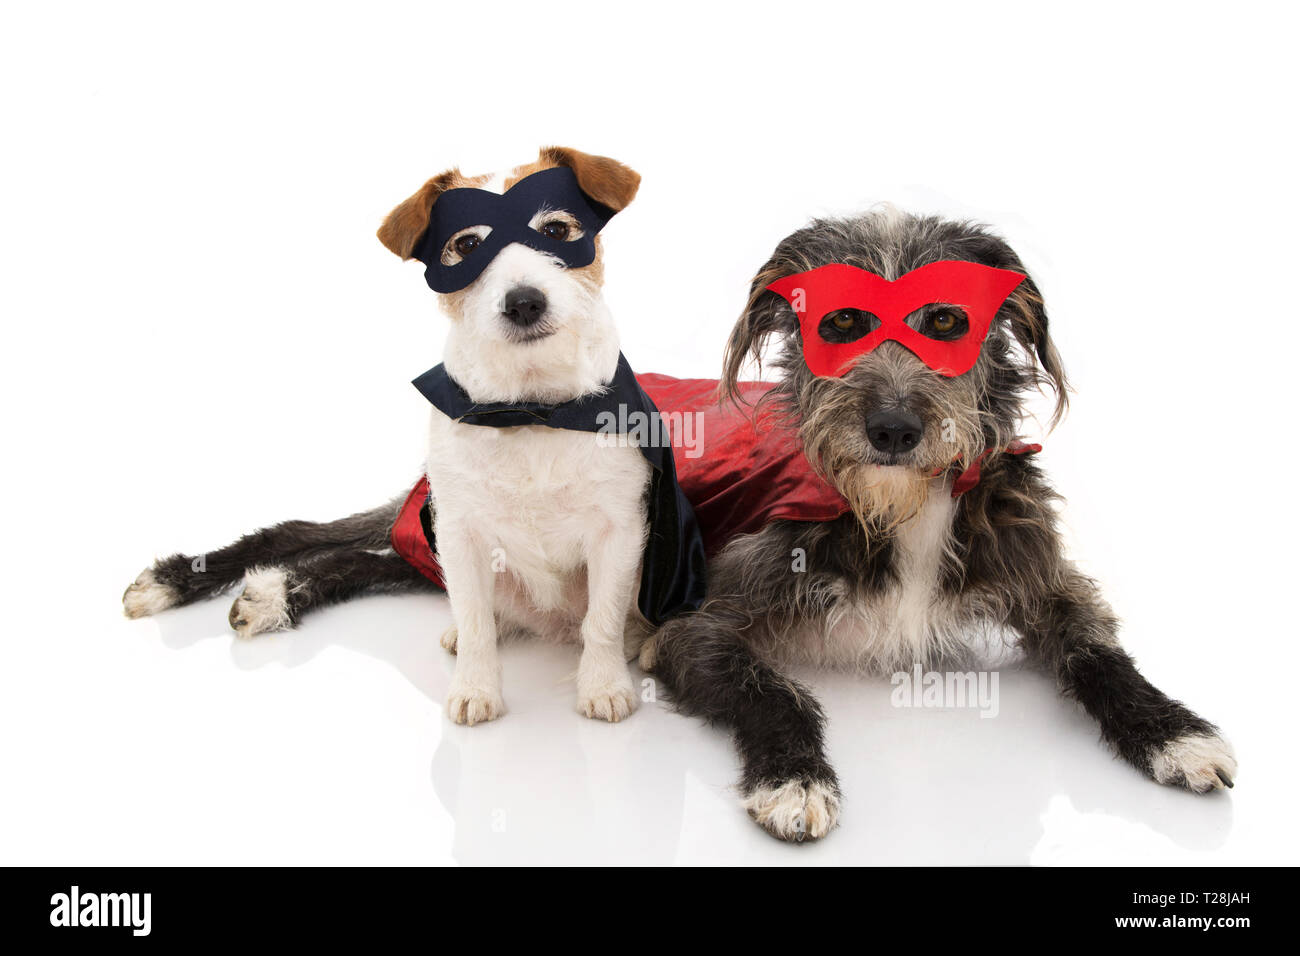 TWO DOGS SUPER HERO COSTUME. JACK RUSSELL AND PUREBRED WEARING A RED AND BLUE MASK AND A CAPE.  CARNIVAL OR HALLOWEEN. ISOLATED STUDIO SHOT AGAINST WH - Stock Image